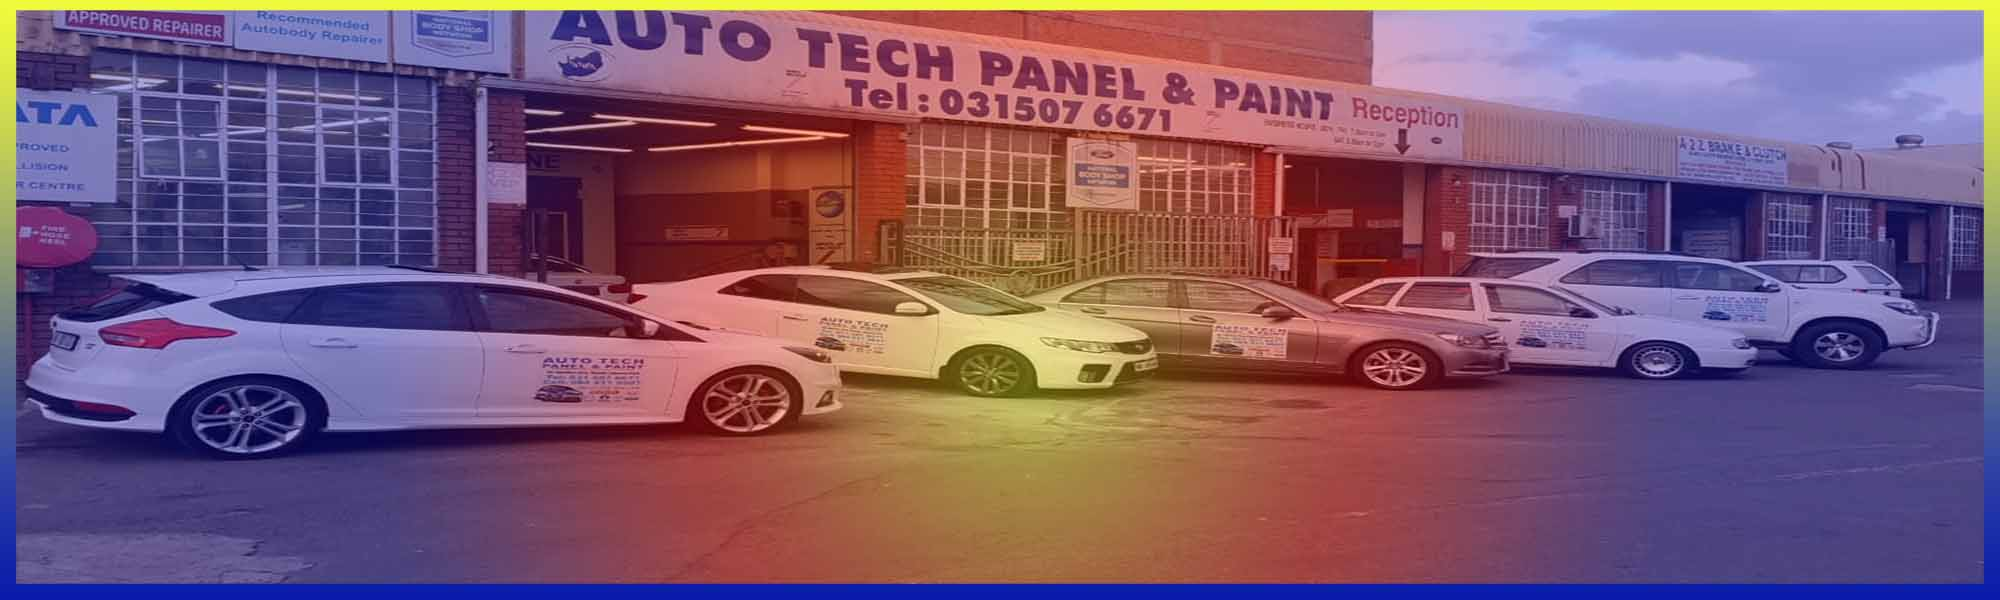 Auto Tech Panel & Paint CC